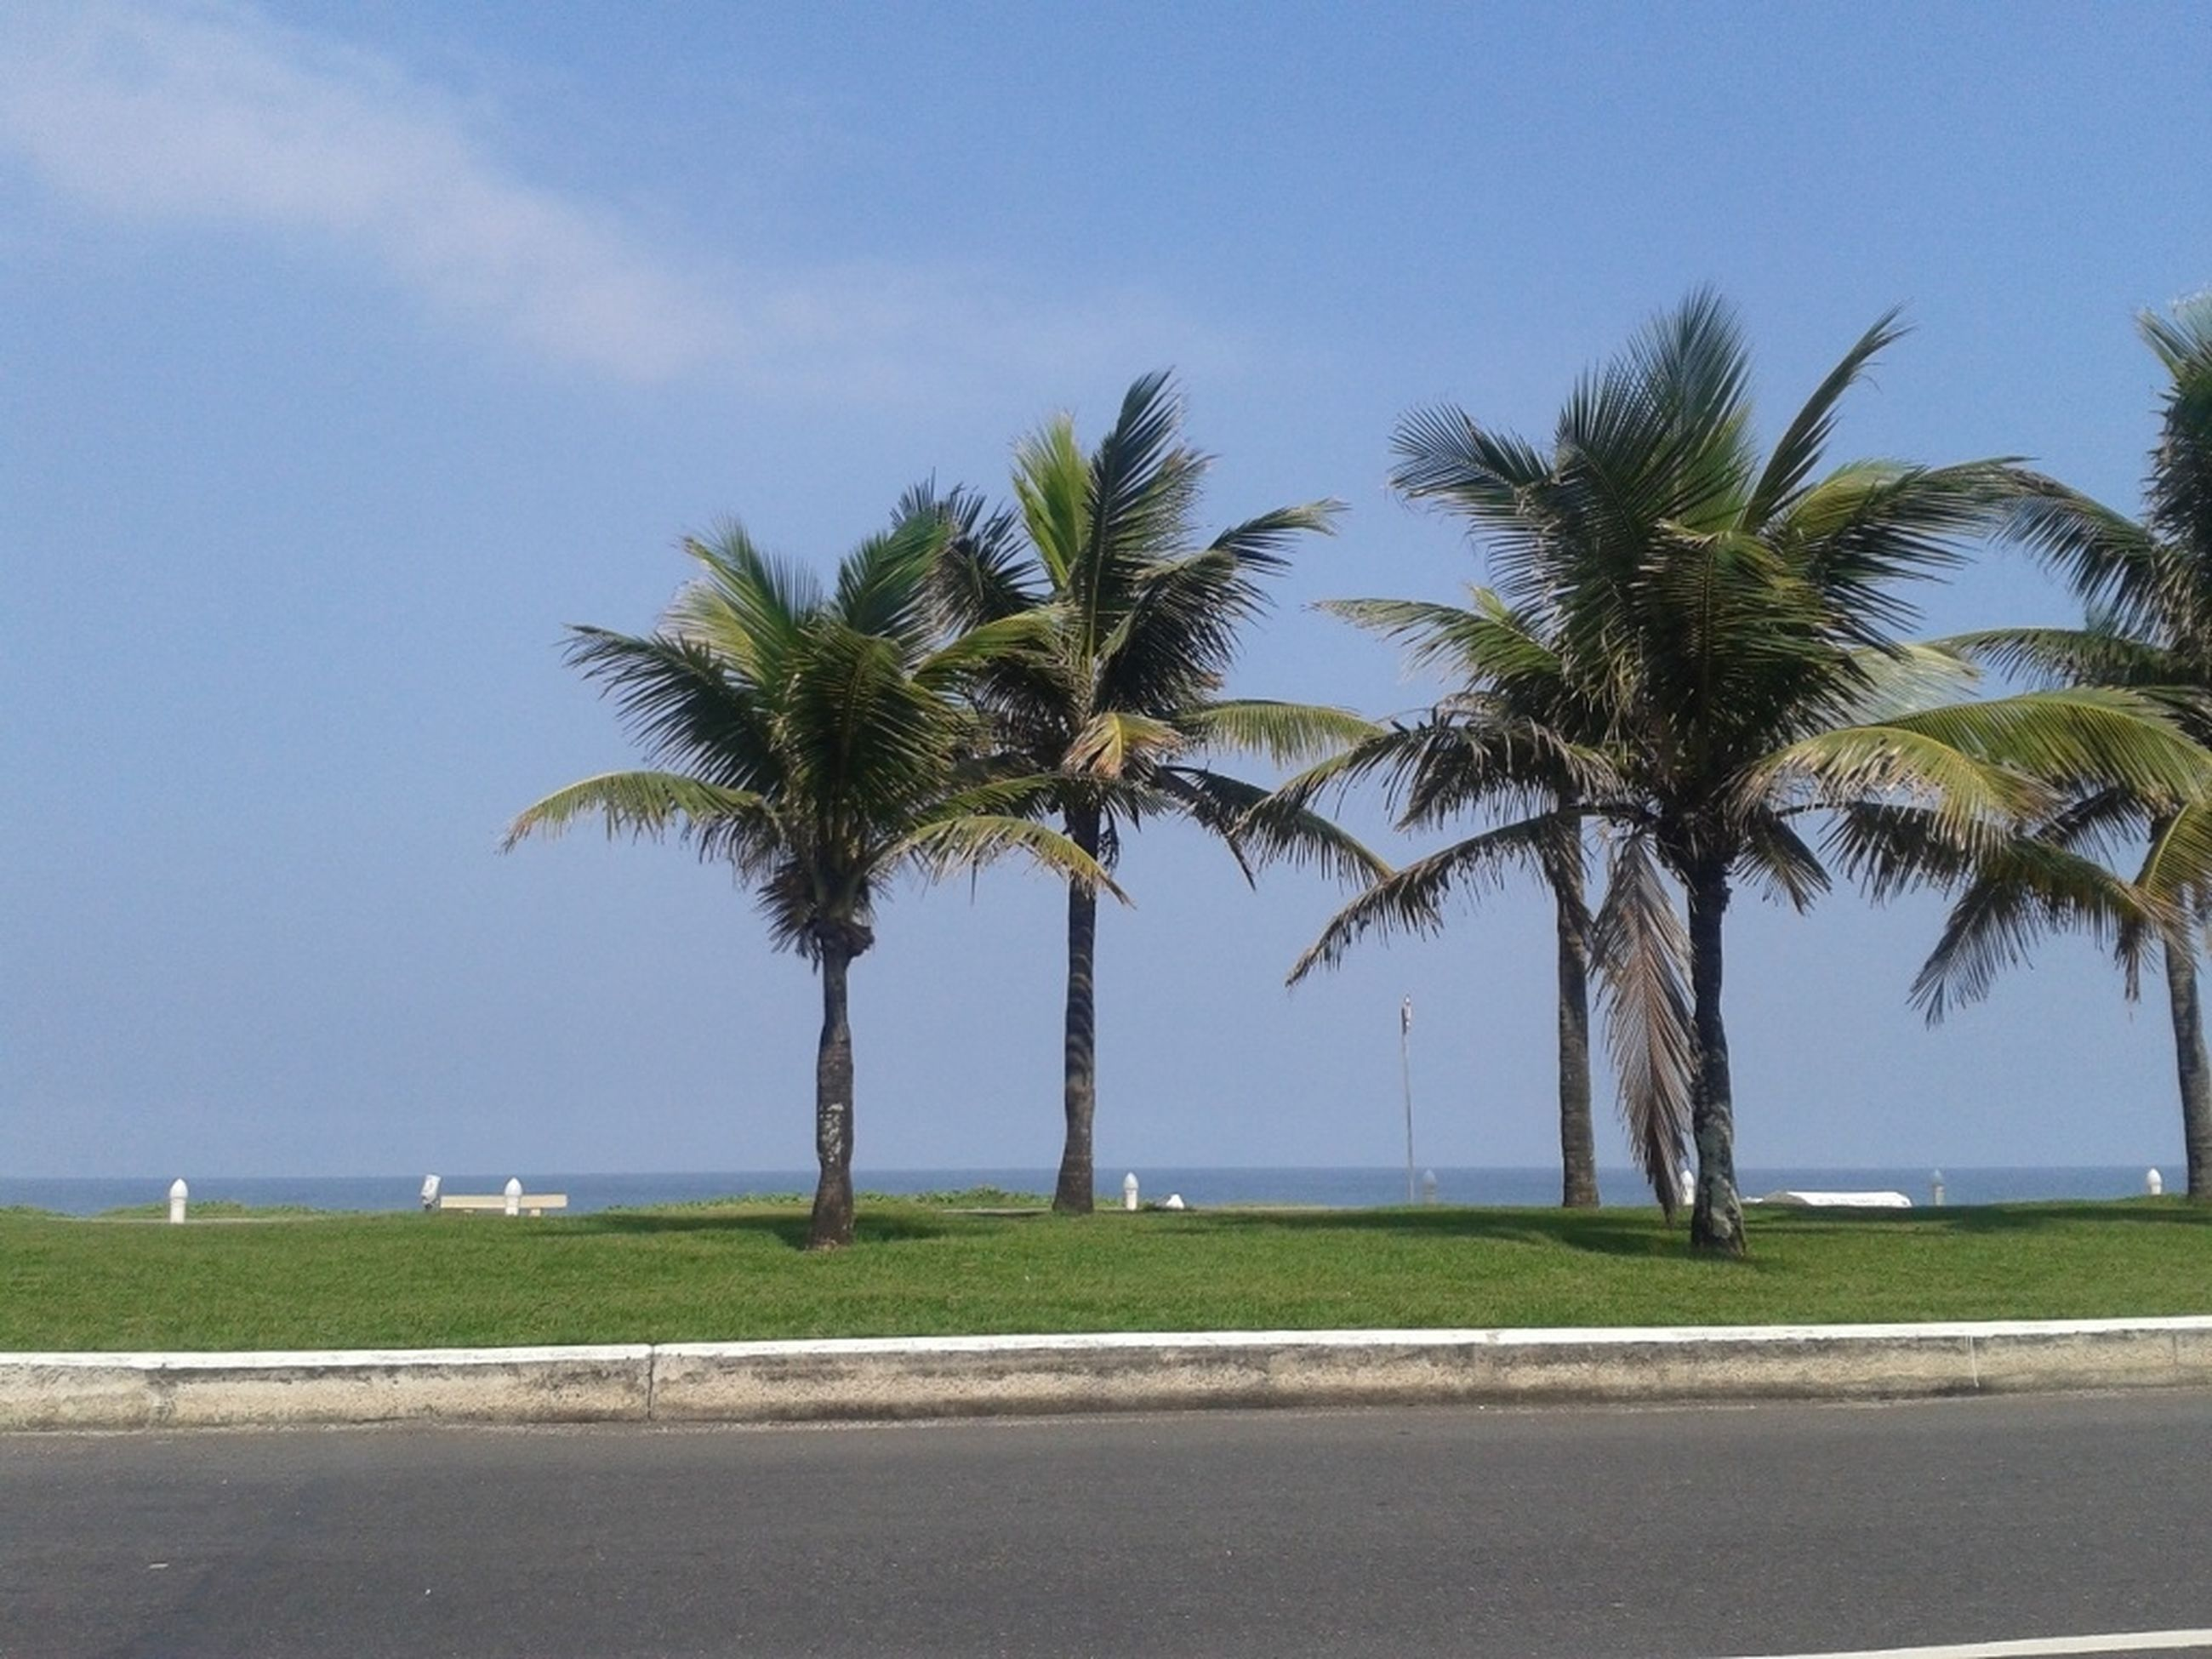 palm tree, tree, tranquility, sky, tranquil scene, road, growth, nature, sea, scenics, blue, beauty in nature, tree trunk, beach, water, clear sky, green color, day, transportation, grass